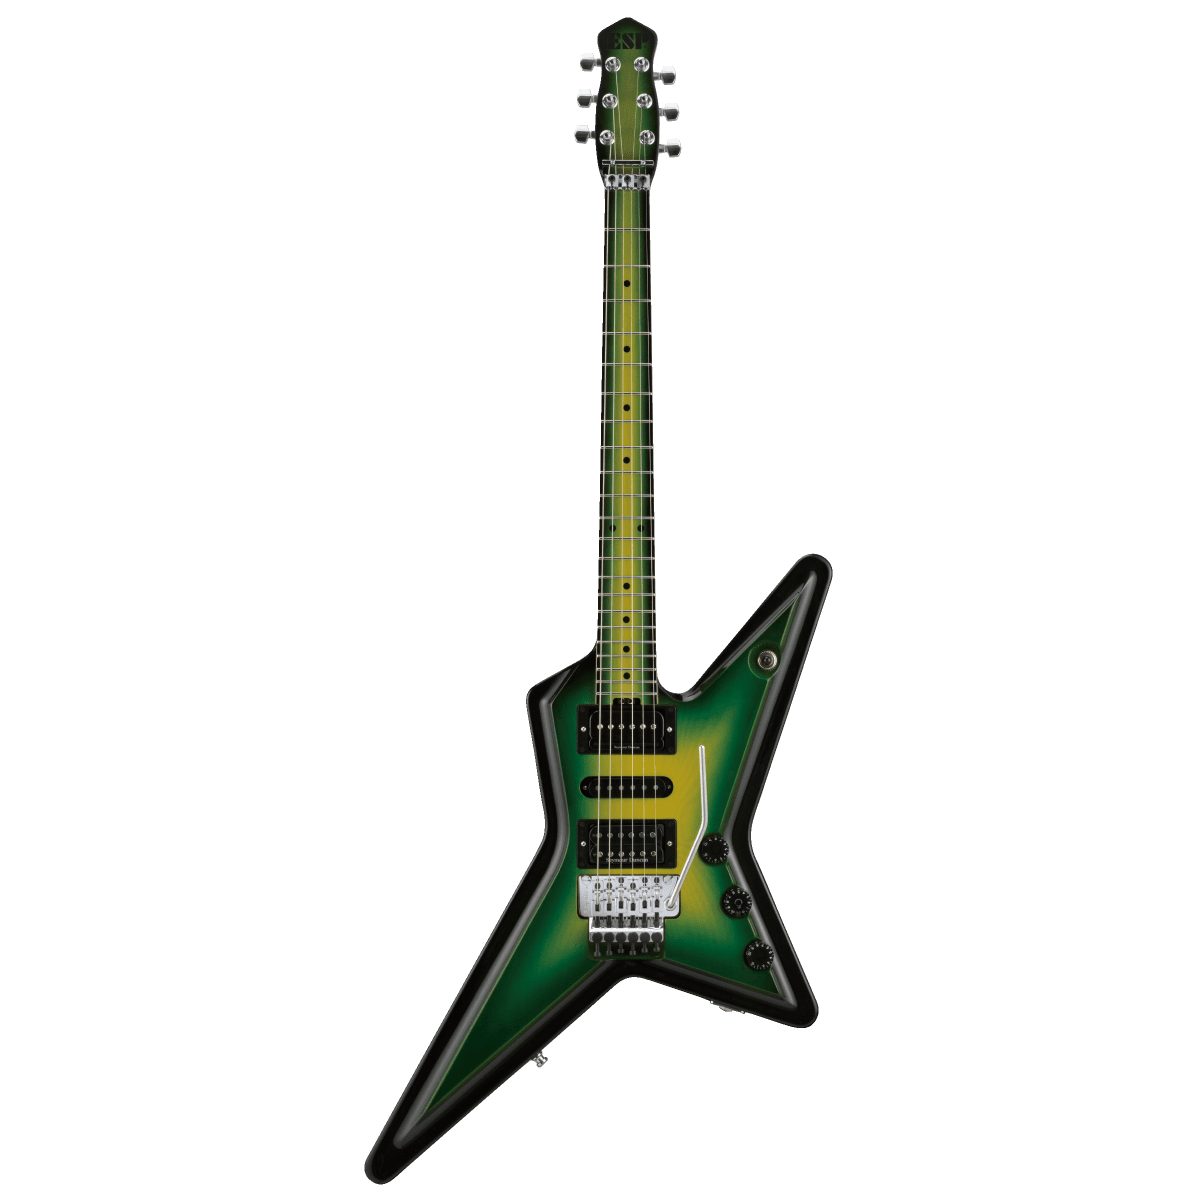 RANDOM STAR® GREEN BURST